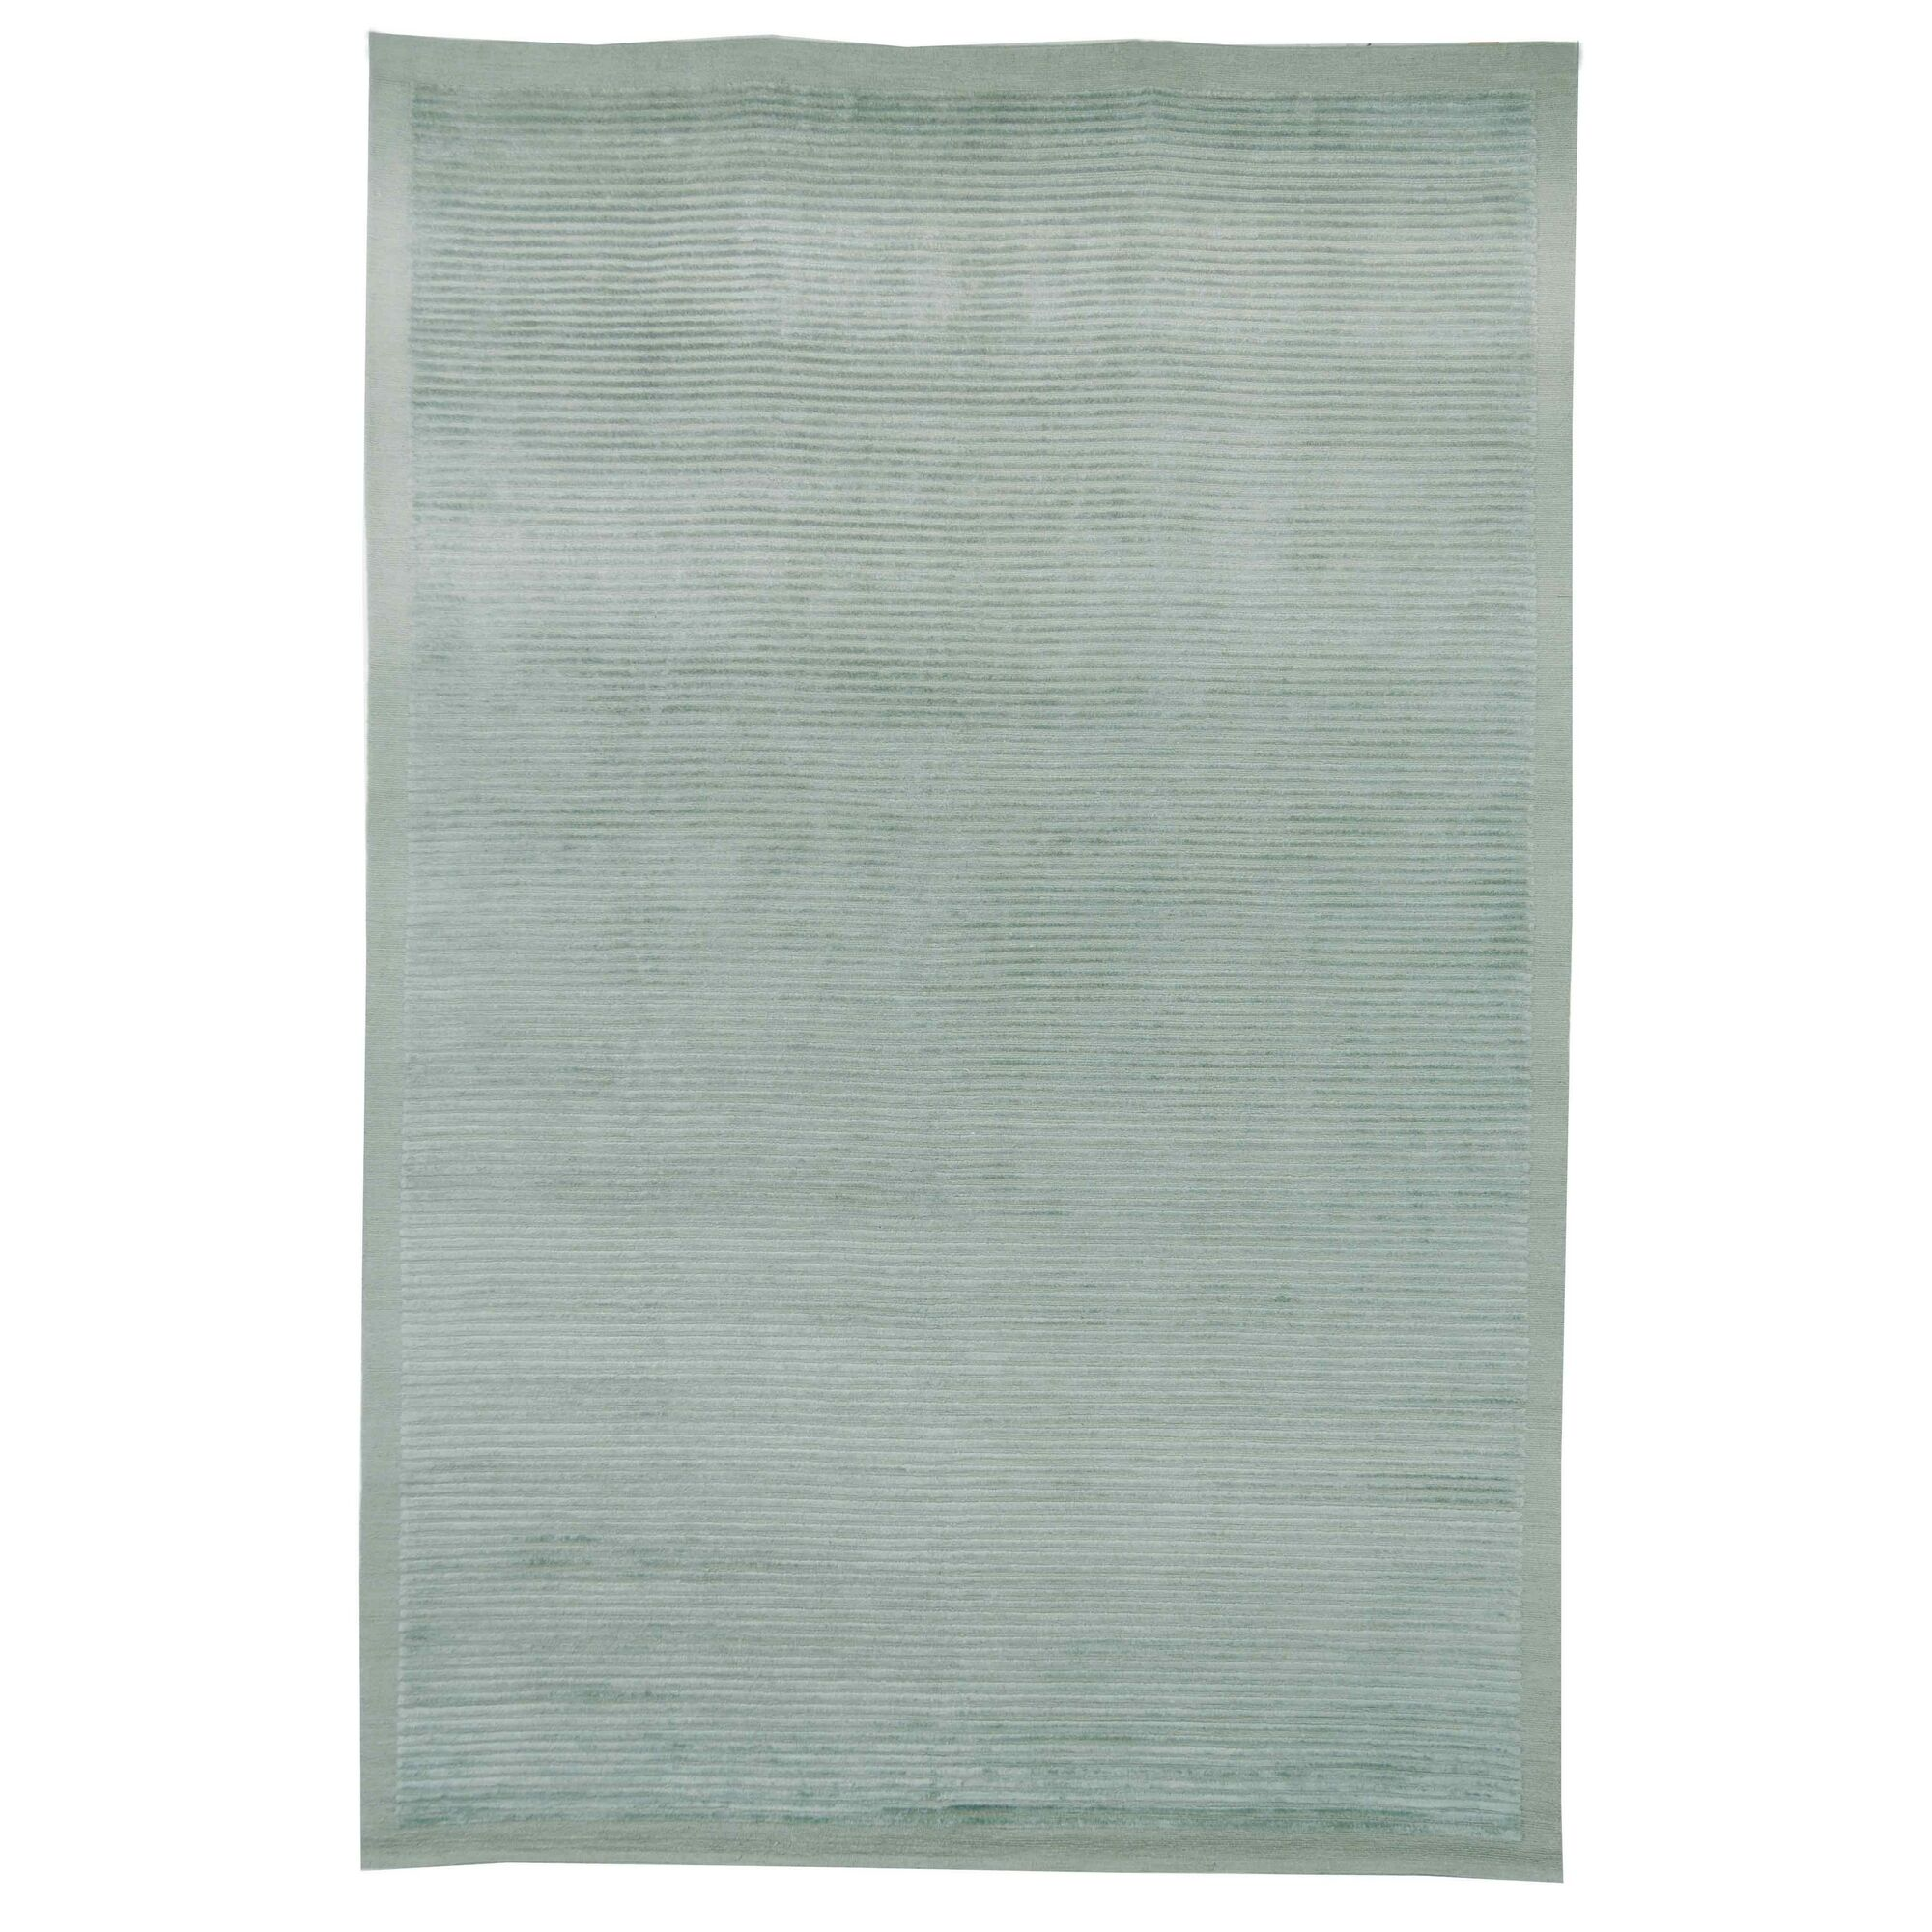 Light Green Area Rug Rug Size: Rectangle 5' x 7'6